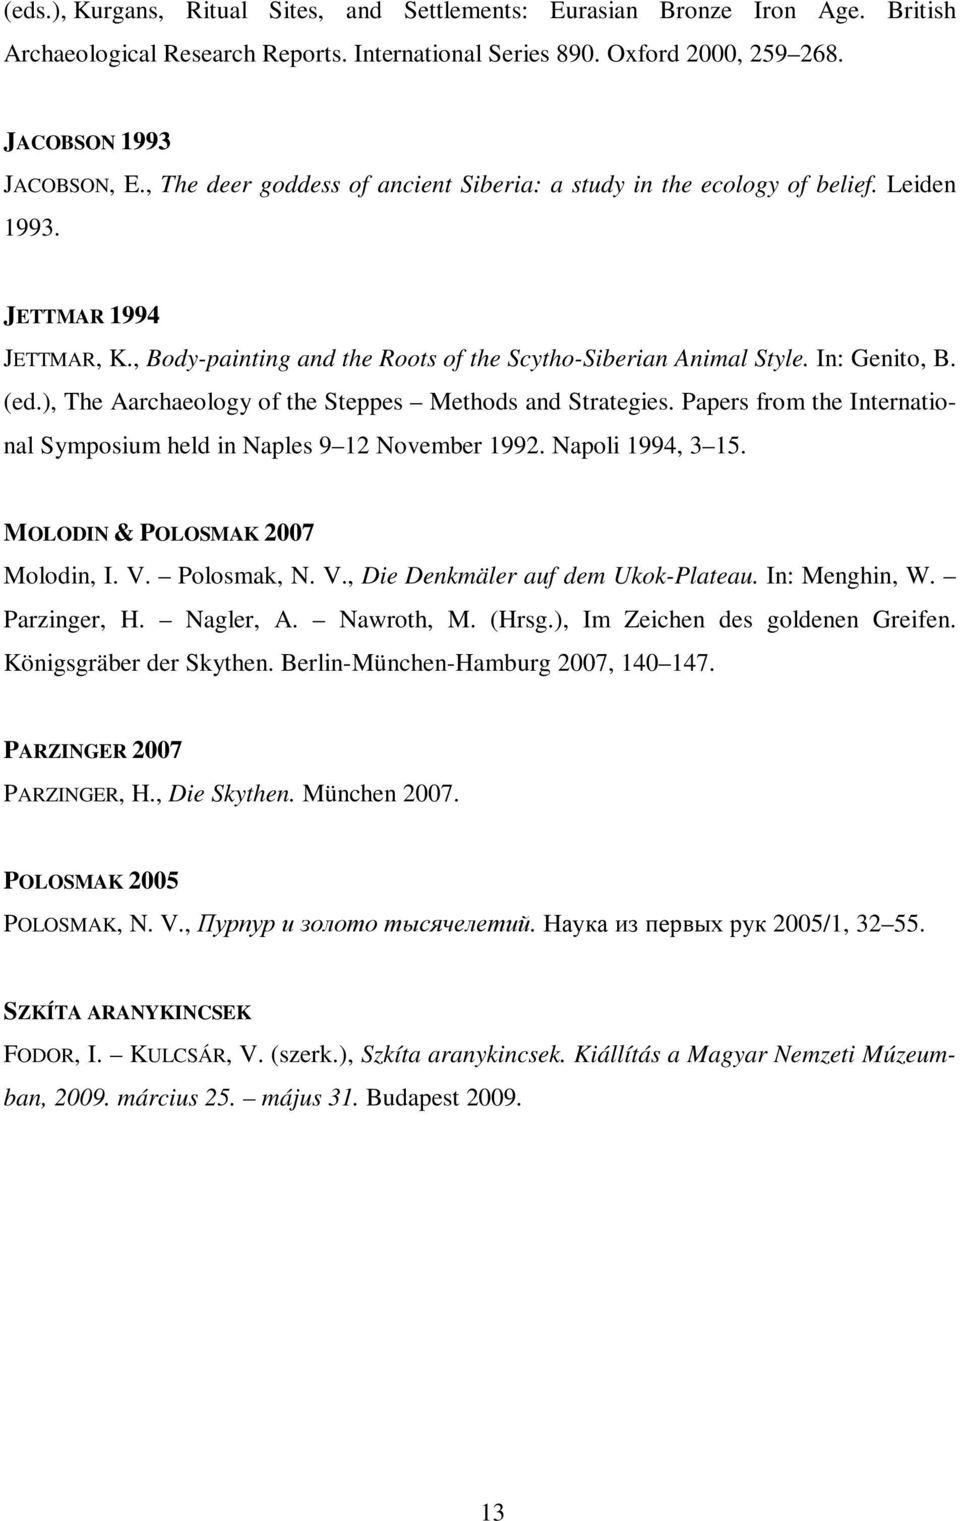 ), The Aarchaeology of the Steppes Methods and Strategies. Papers from the International Symposium held in Naples 9 12 November 1992. Napoli 1994, 3 15. MOLODIN & POLOSMAK 2007 Molodin, I. V.